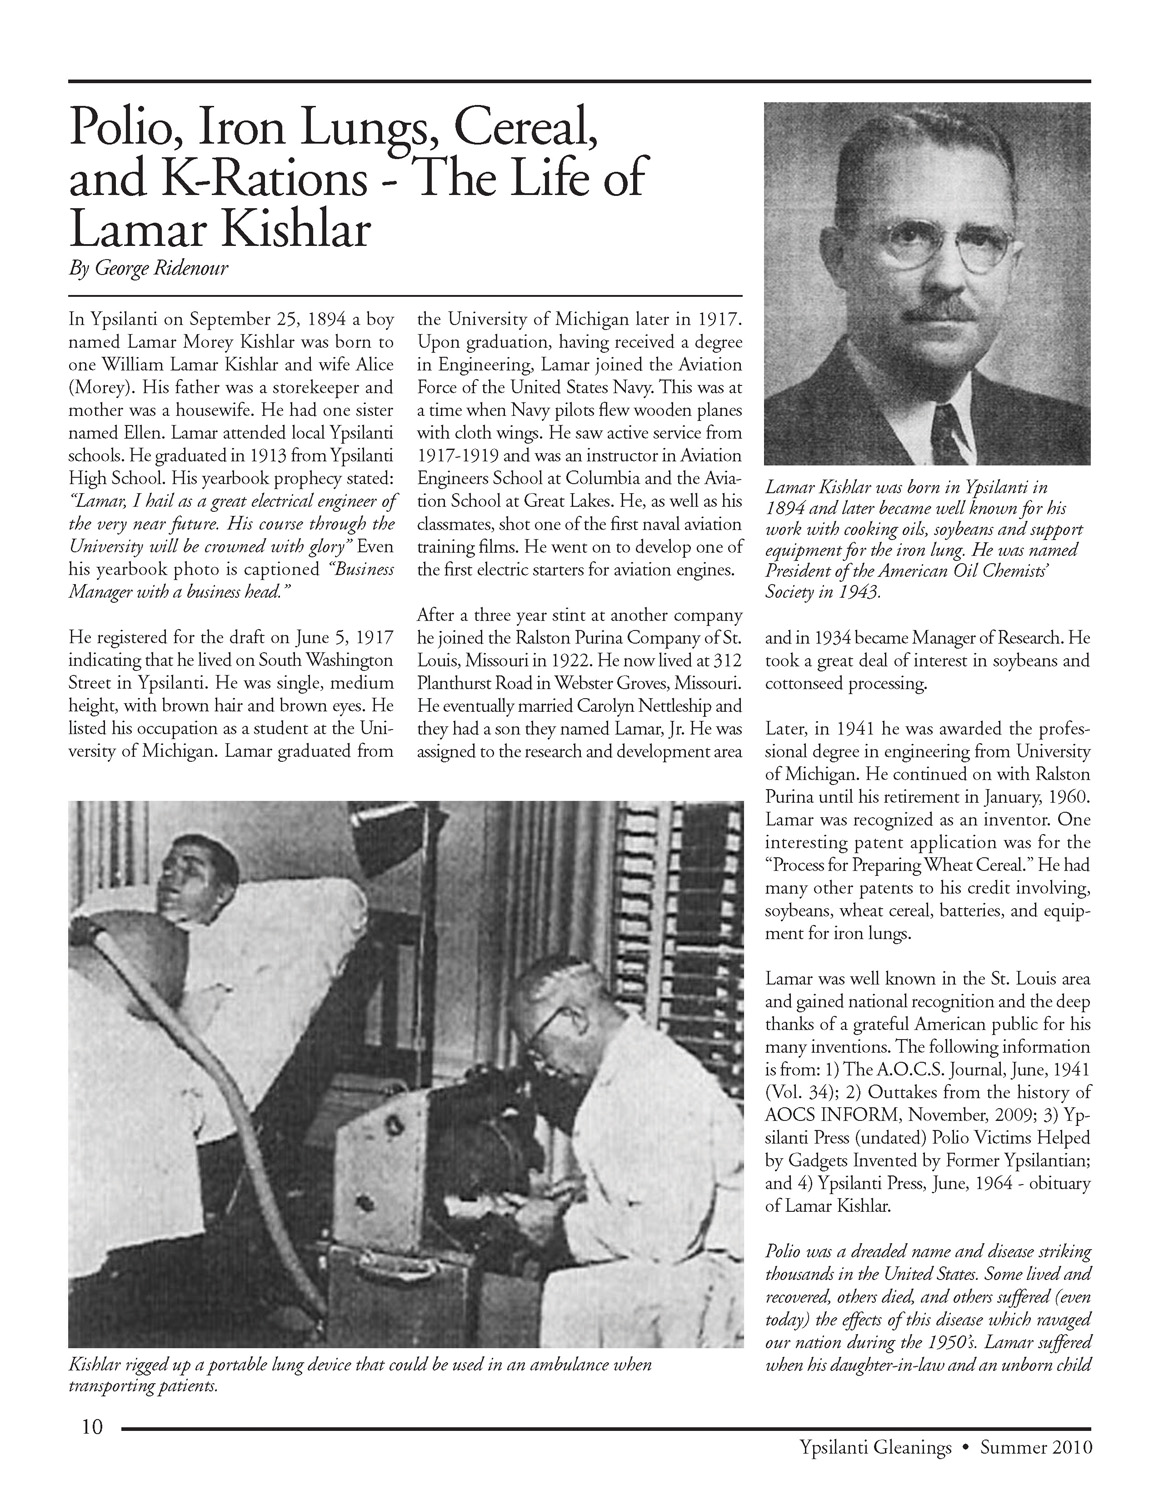 Polio, Iron Lungs, Cereal, and K-Rations - The Life of Lamar Kishlar image